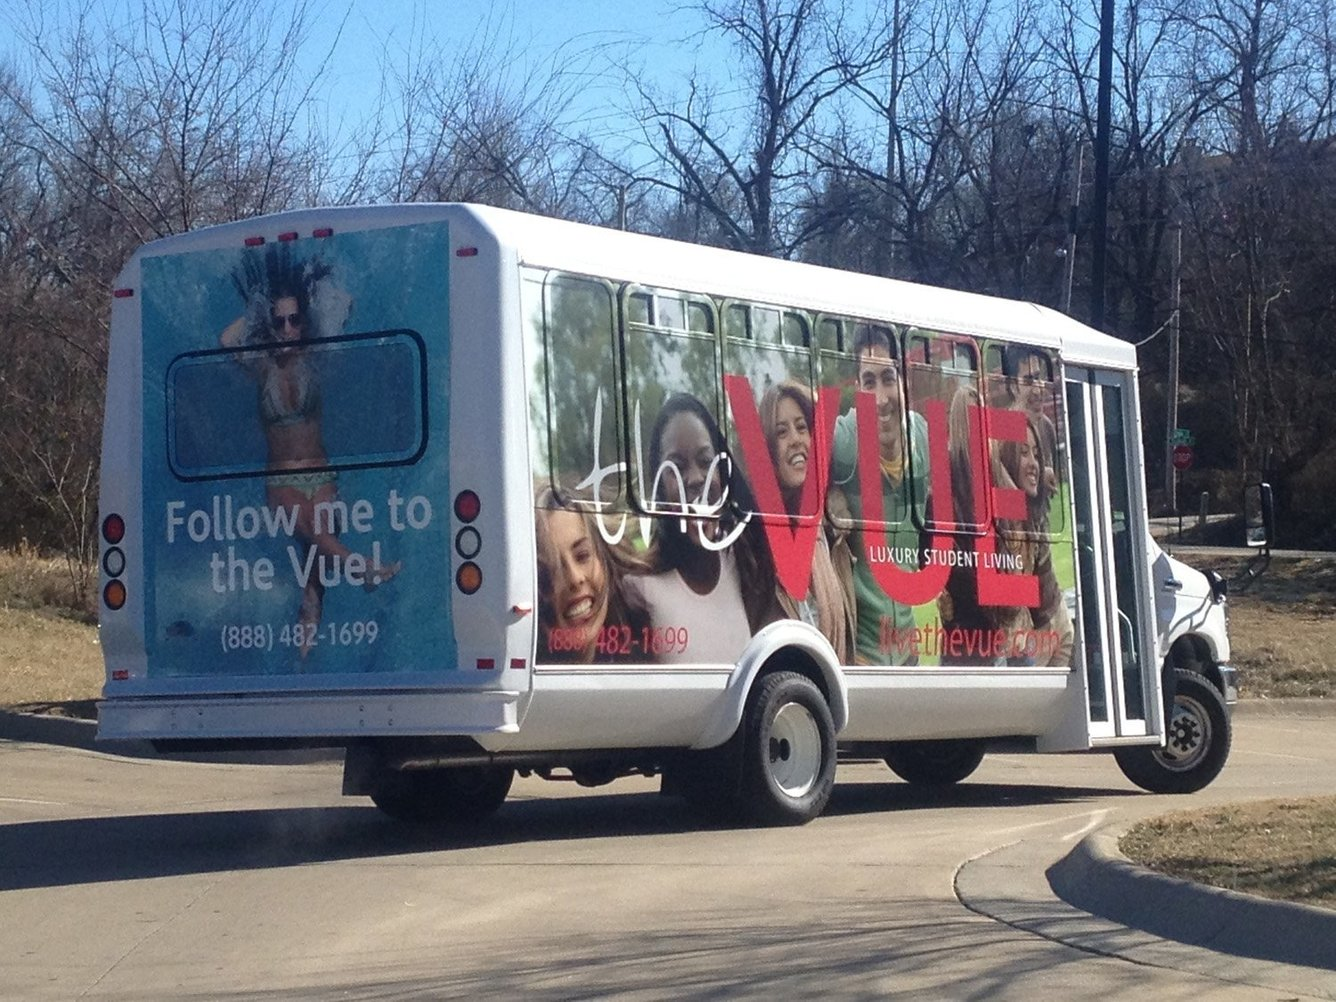 Off Campus University of Arkansas Housing | The Vue on